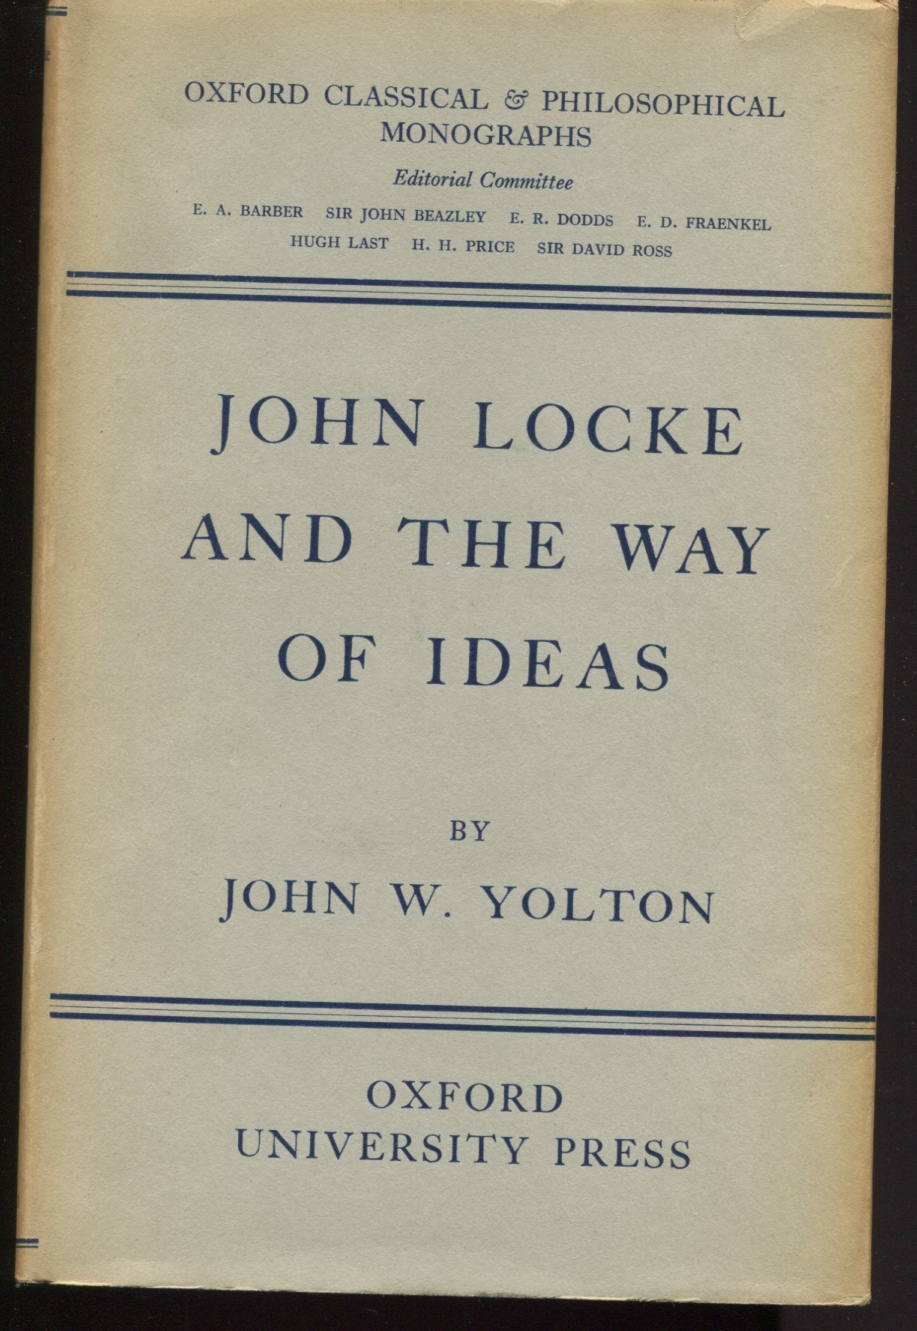 John Locke and the Way of Ideas.